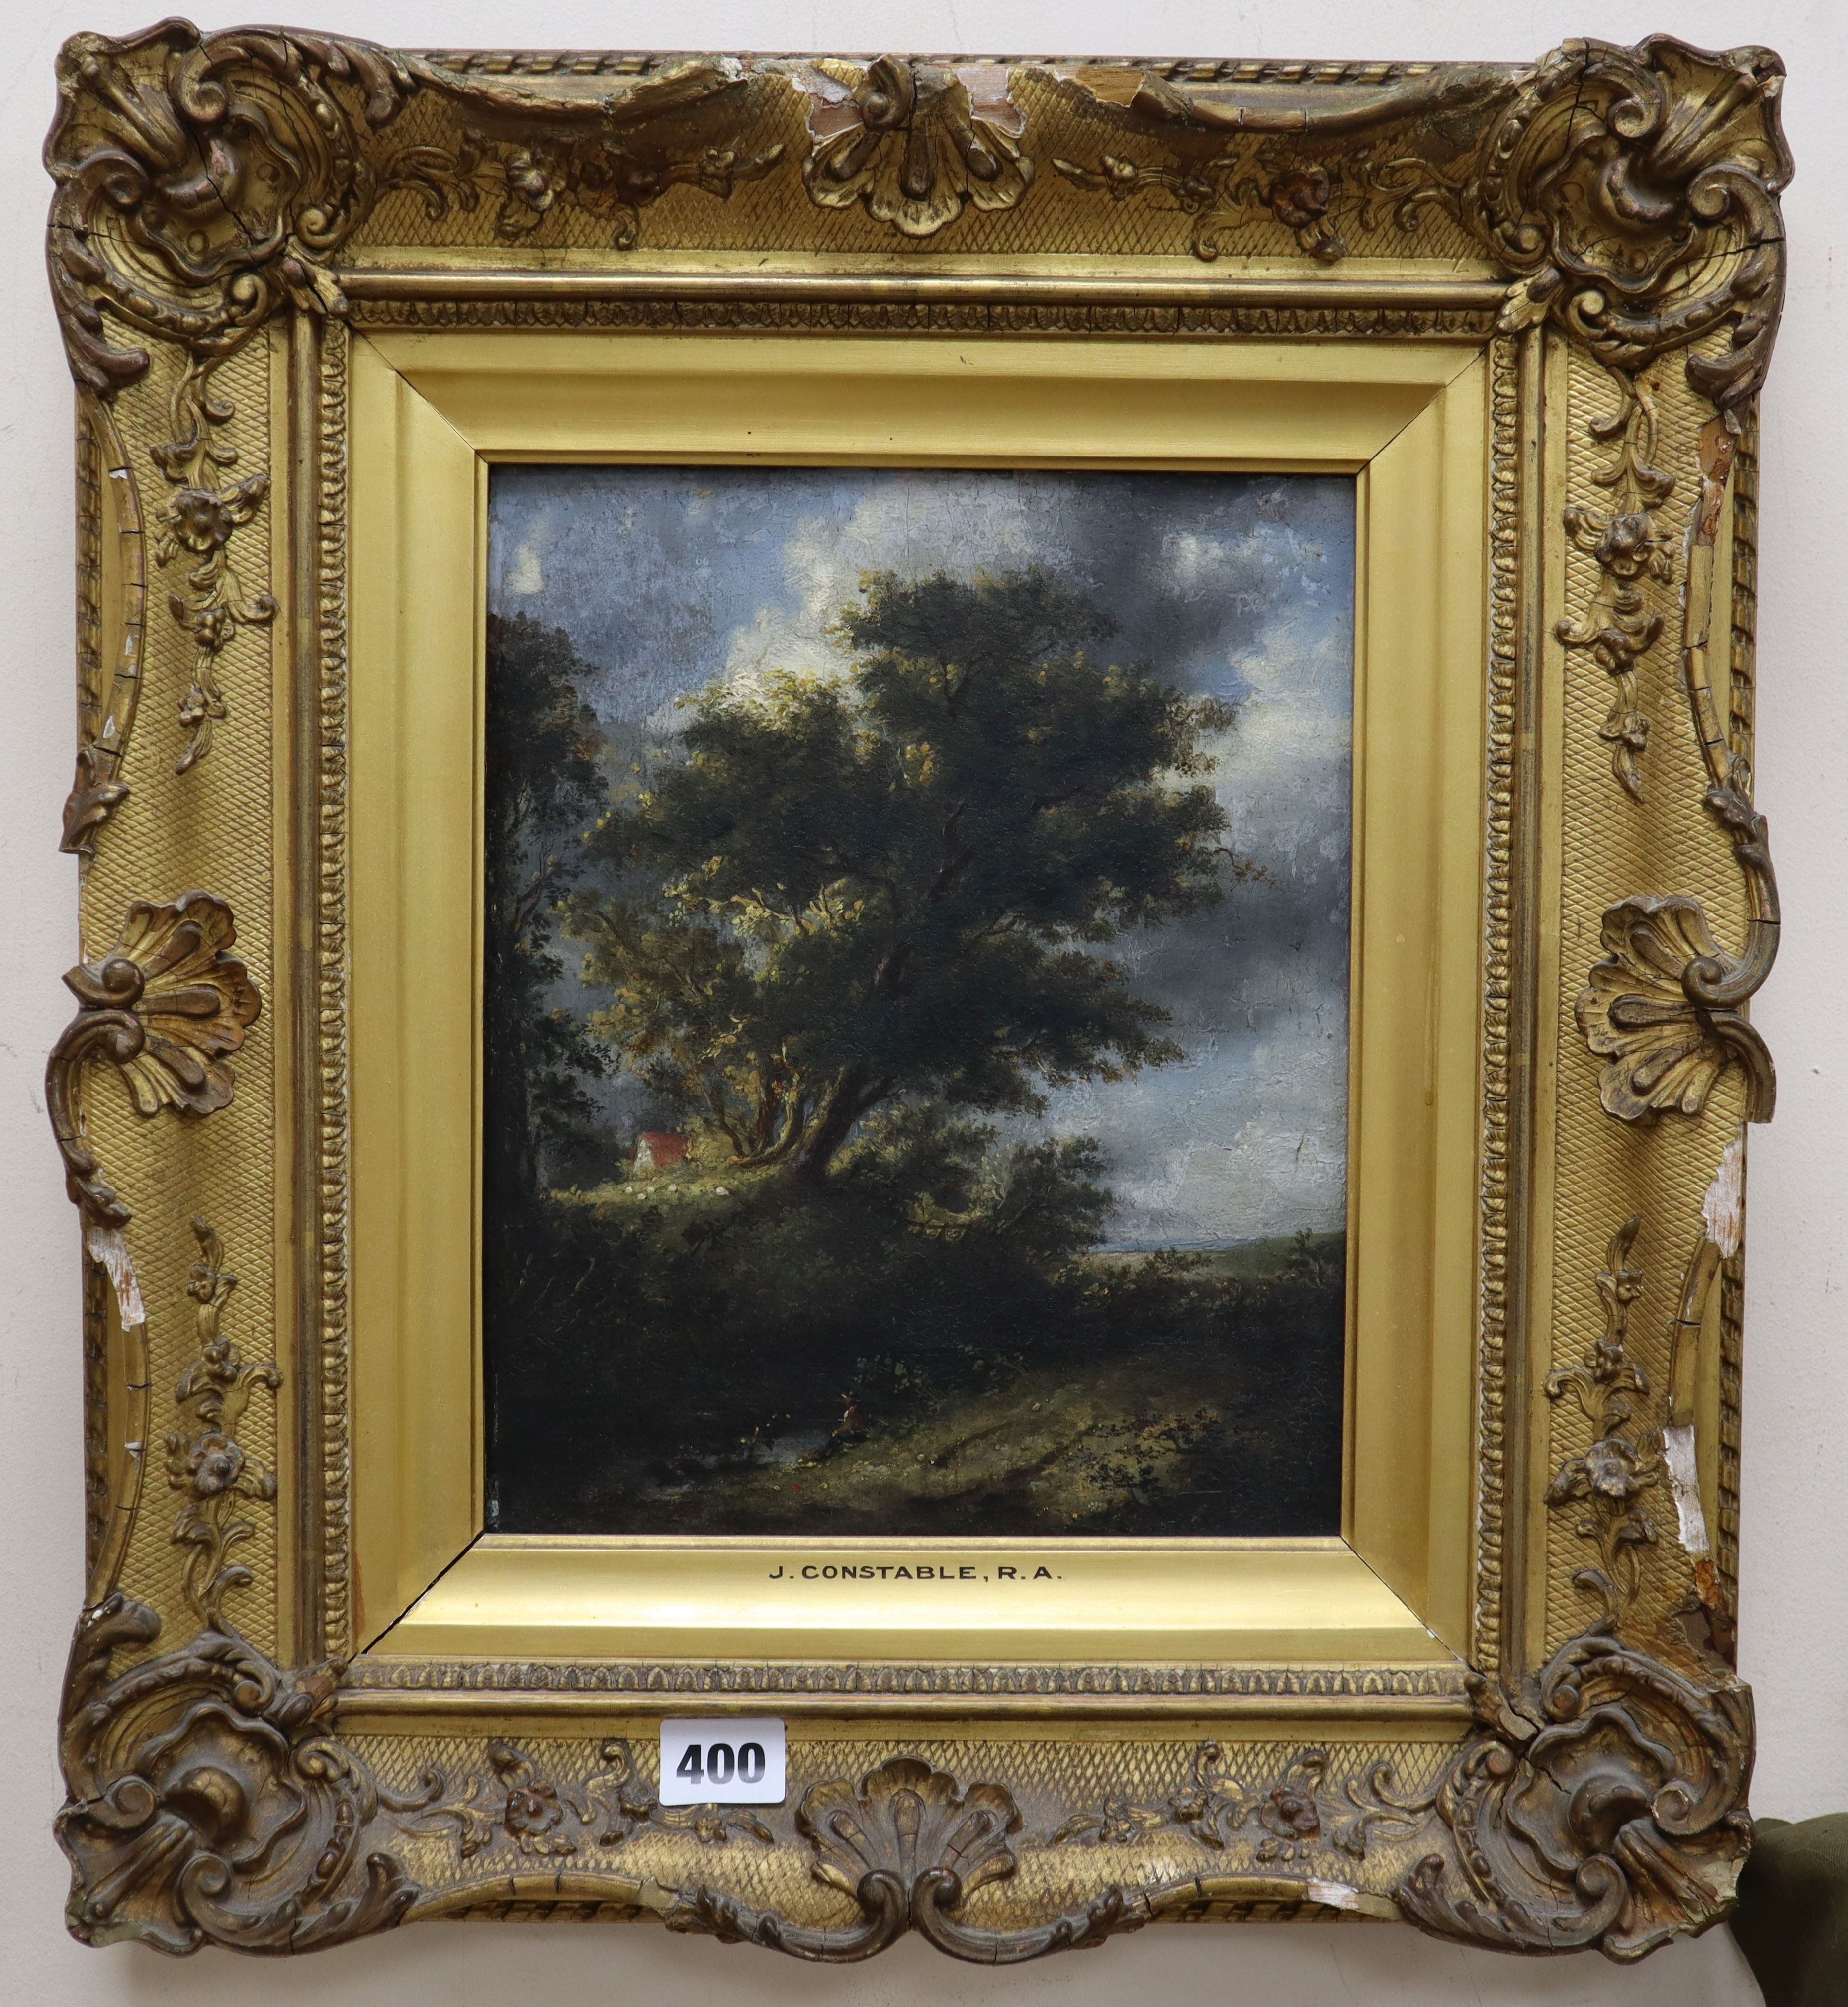 Lot 400 - Manner of John Constable, oil on panel, figure and cottage in a landscape, 28.5 x 23cm